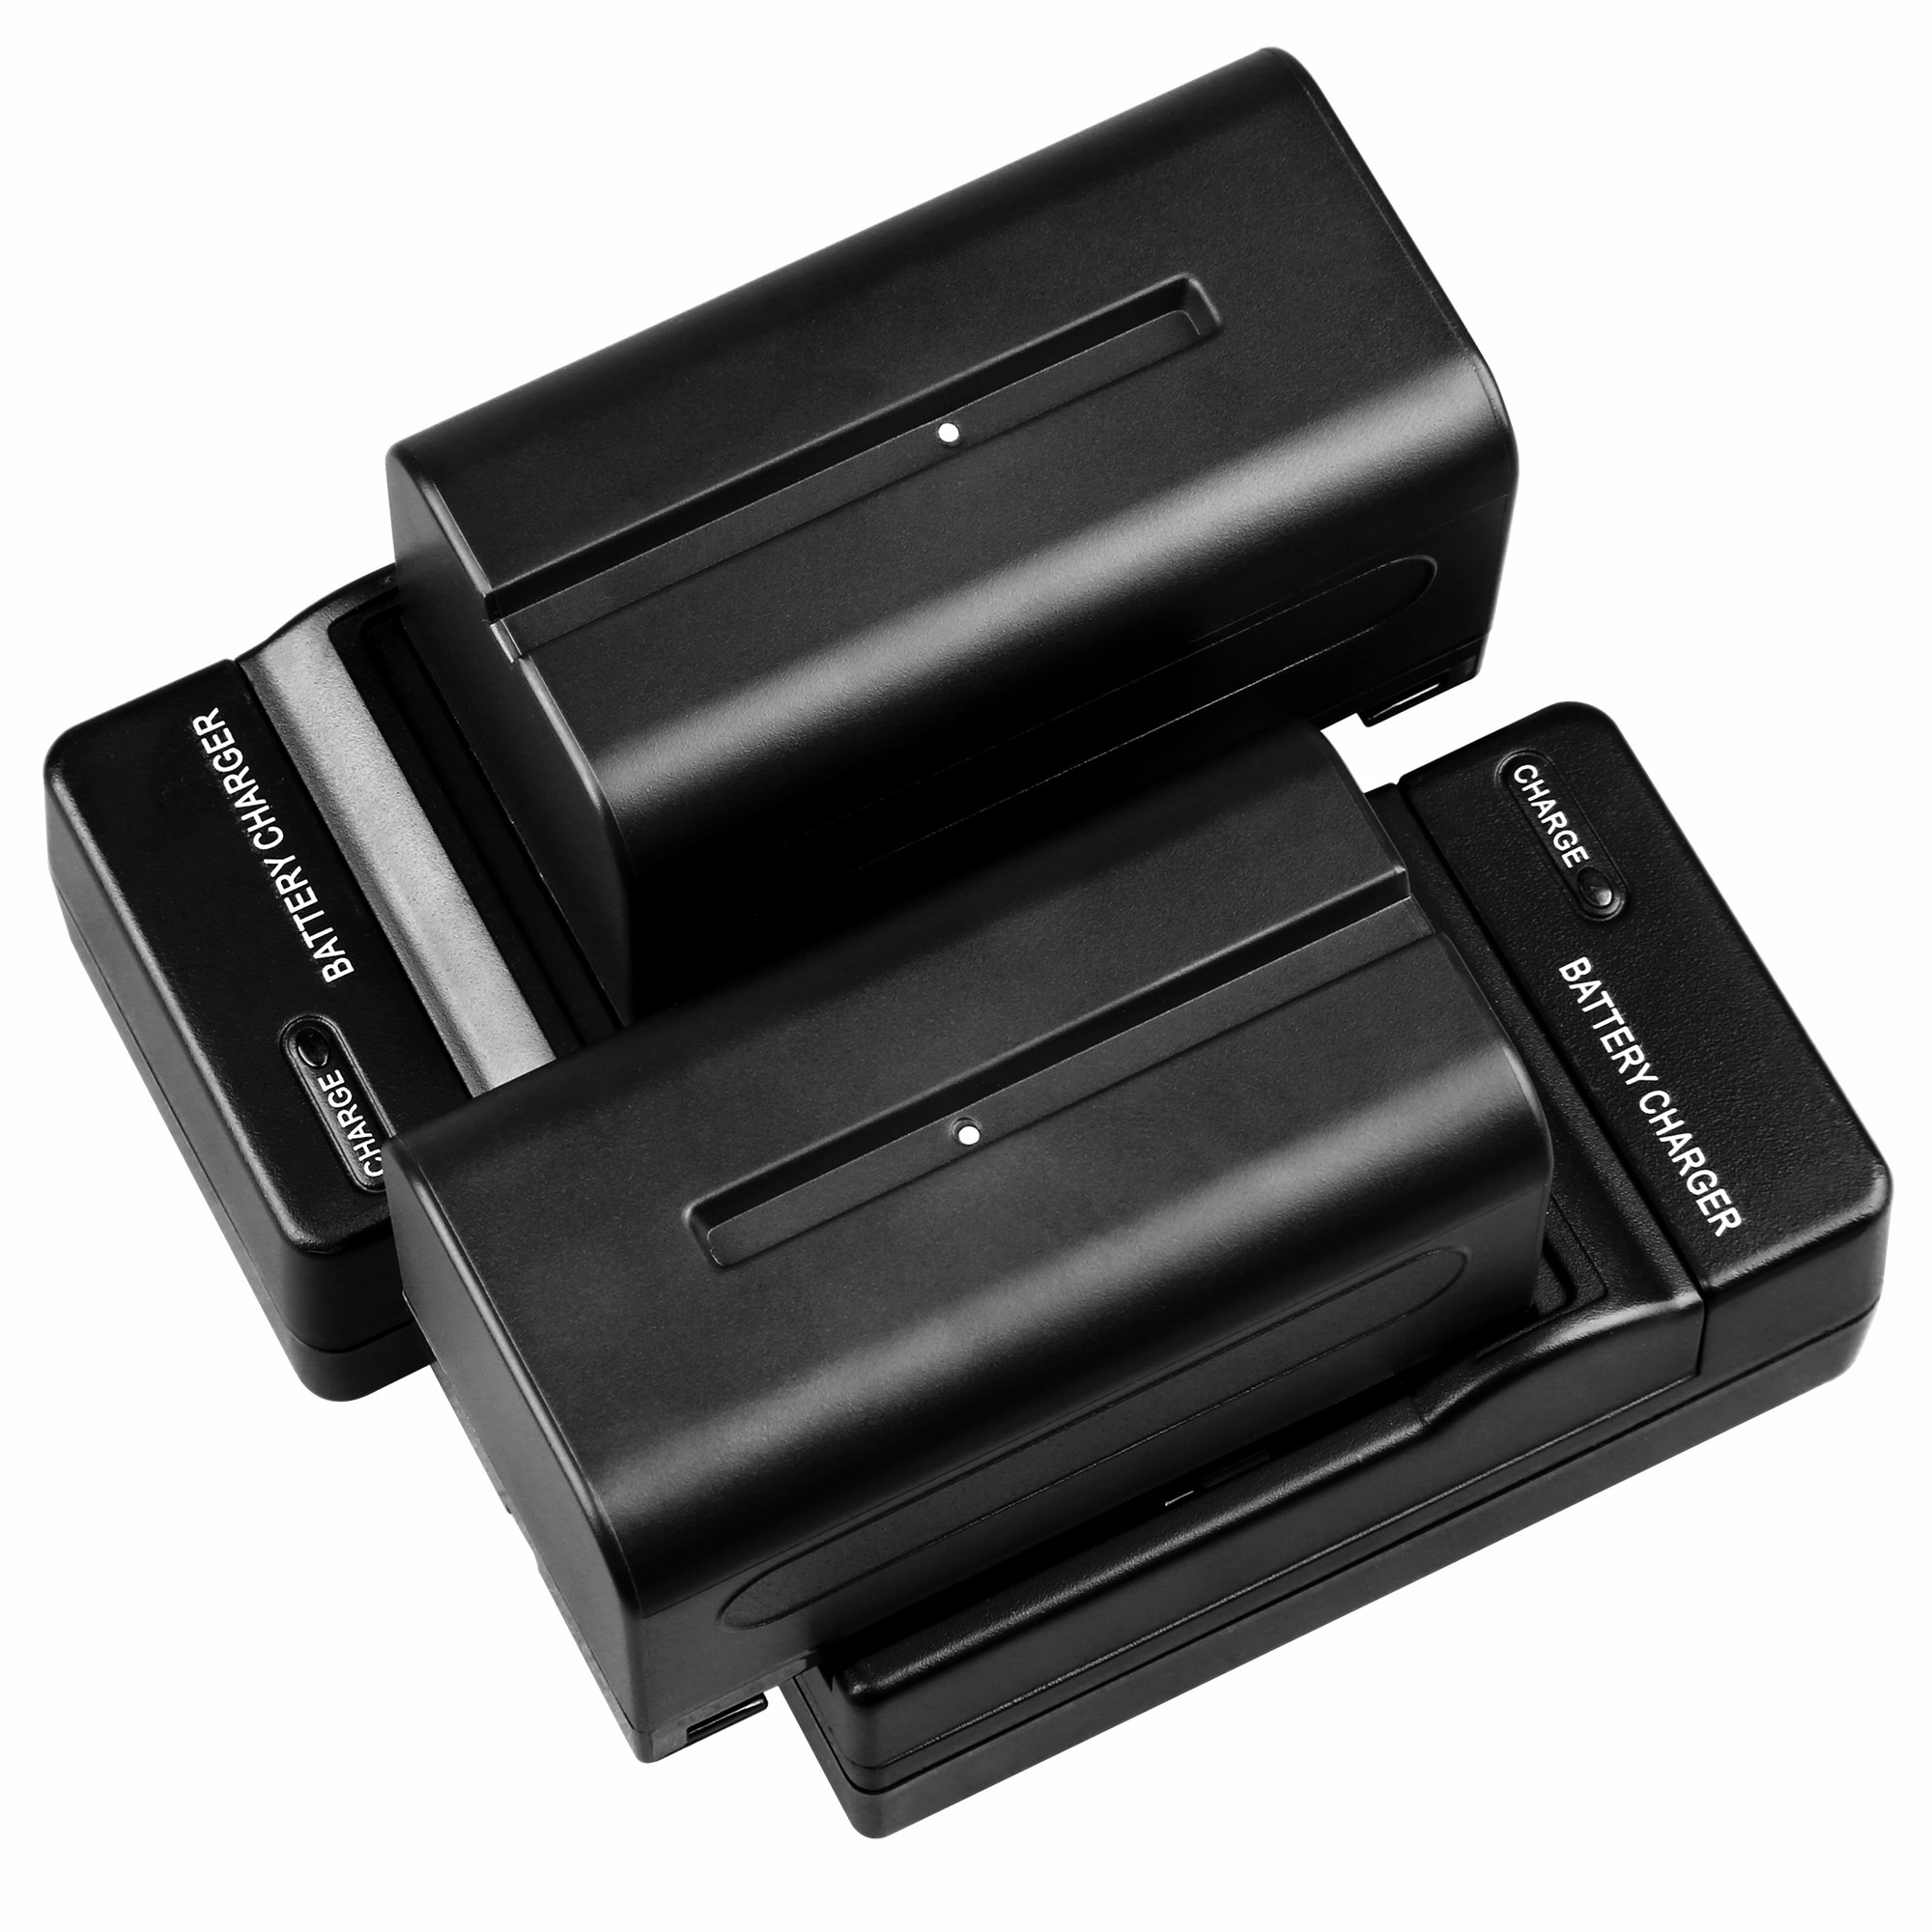 GVM Li-ion NPF 750 Replacement Battery 4400mAh 2 Pieces Batteries With 2 Charger Fit For Sony HandyCams, GVM Led Video Light 480ls, 520ls, 520s 672s And Other LED On-Camera Photography Lighting